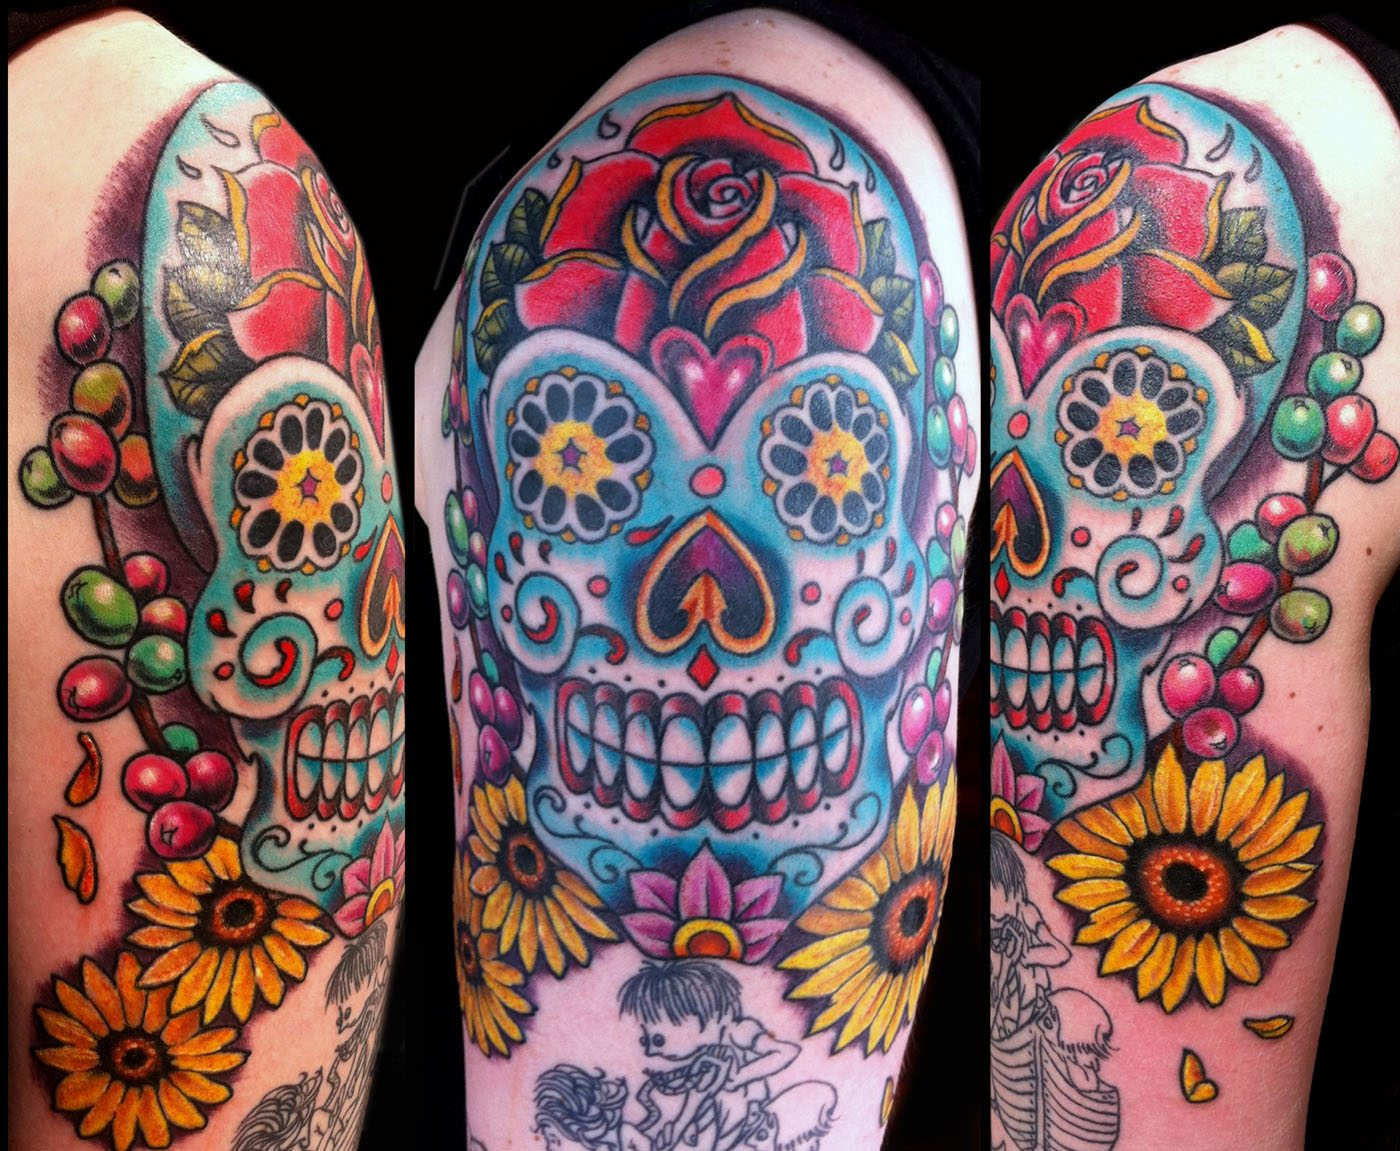 Catrina day of the dead archives slave to the needle for Day of the dead skull tattoo